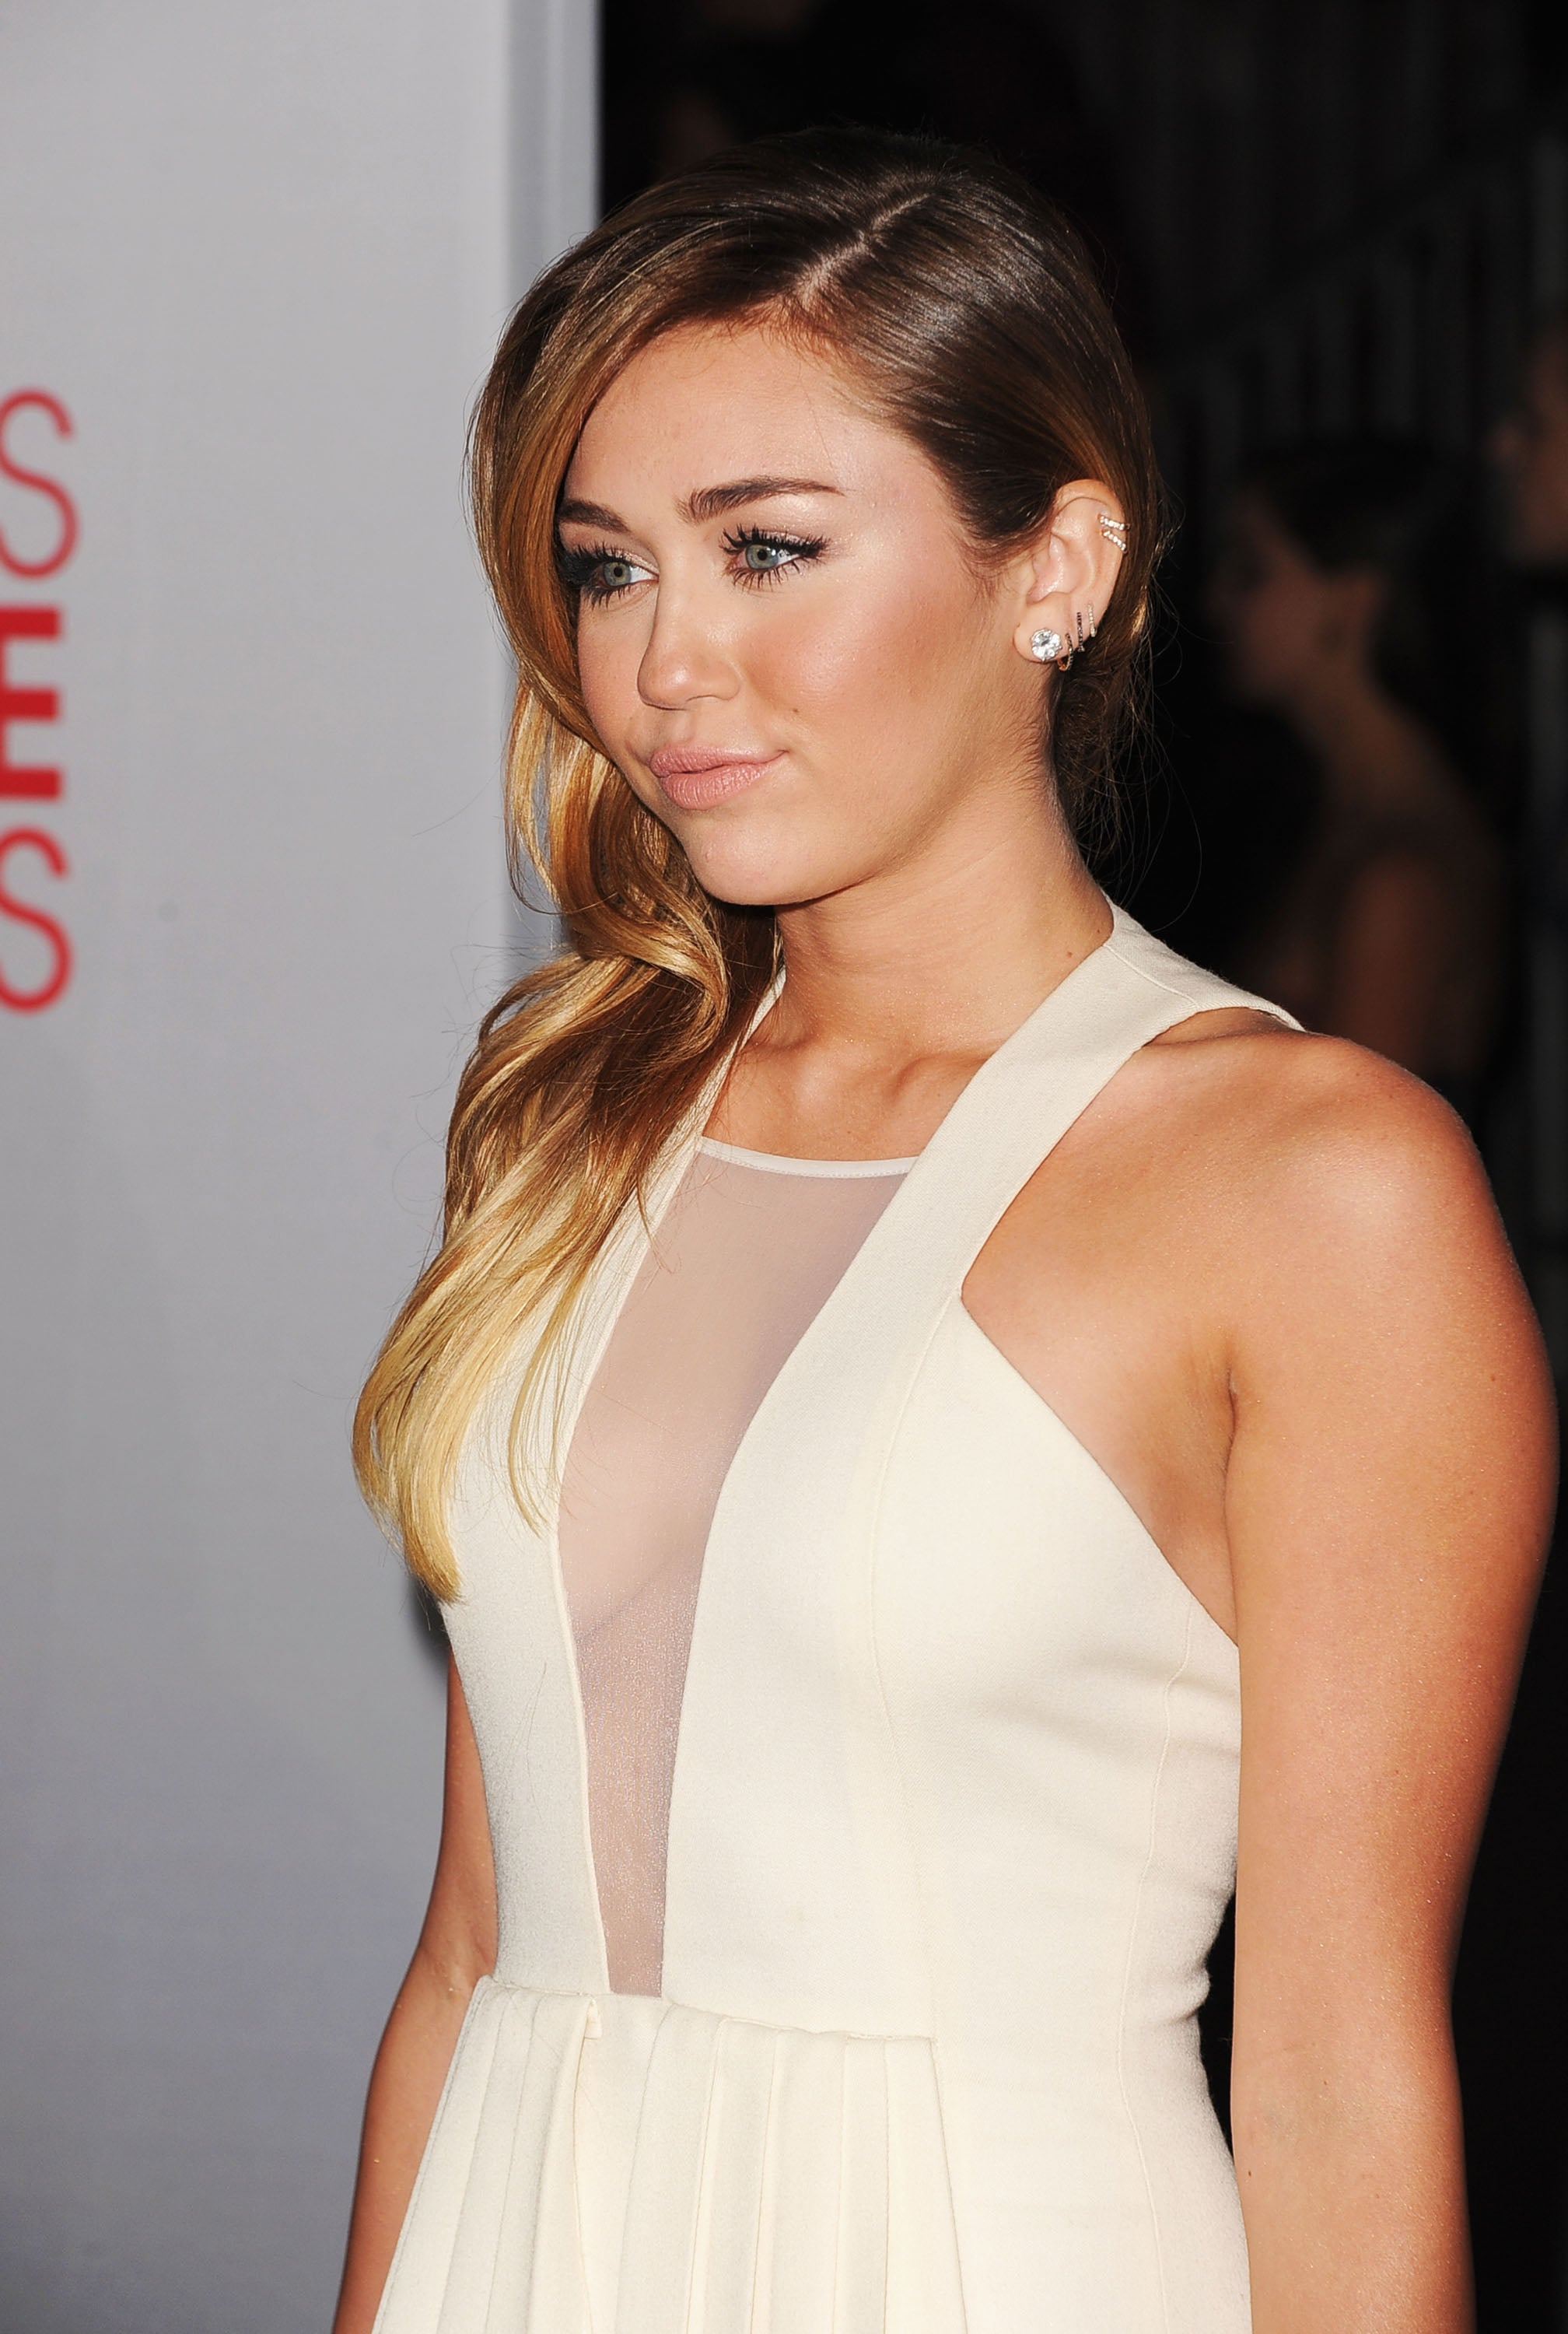 Miley Cyrus pushed her hair to one side.